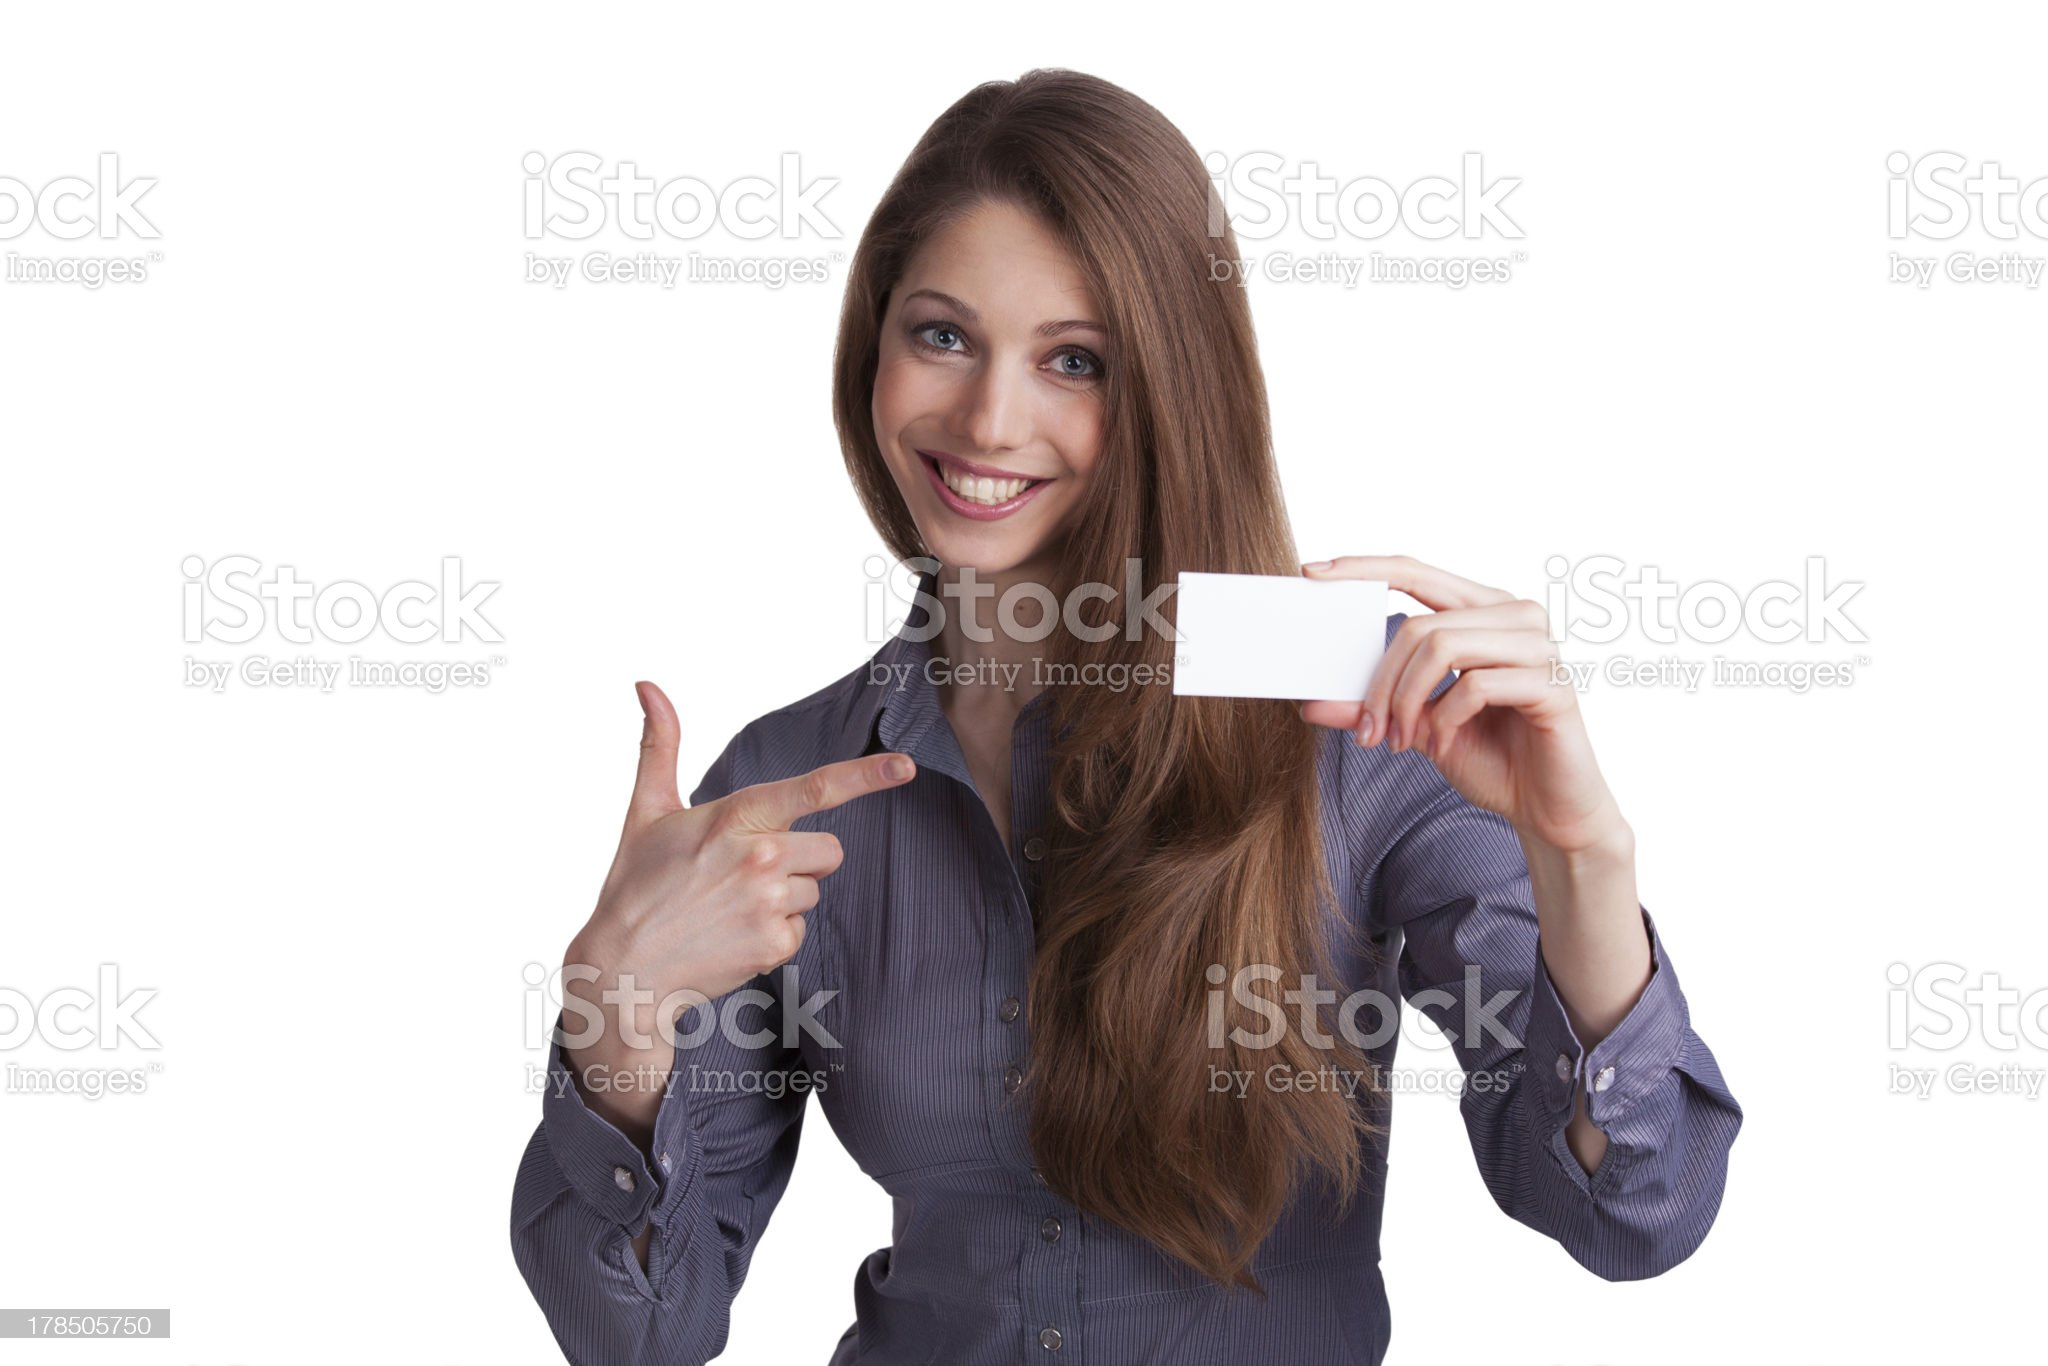 Girl showing a business card in hand royalty-free stock photo